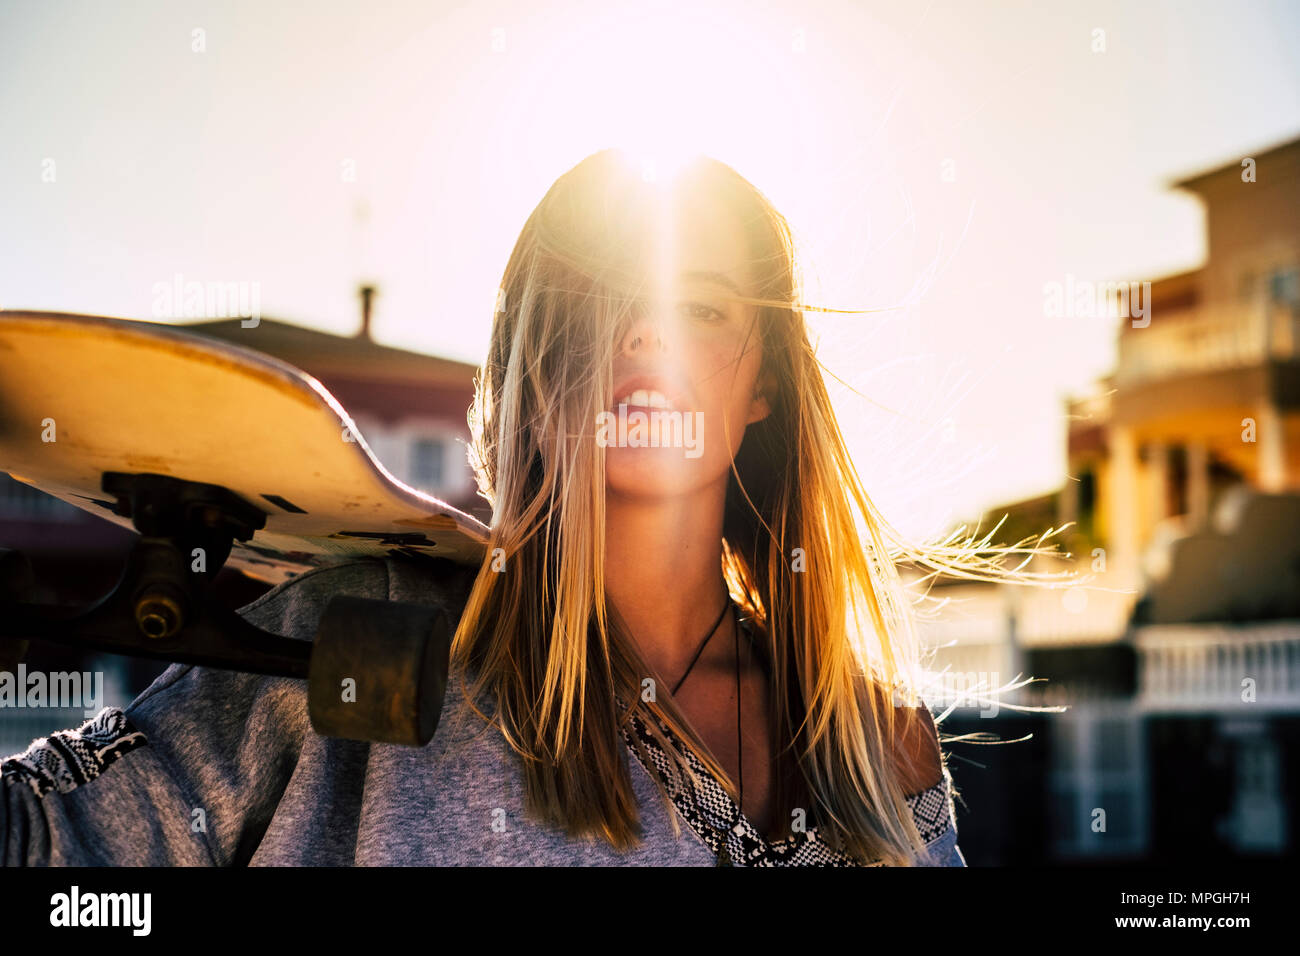 nice portrait for a beautiful long blonde hair young woman with her skateboard on the shoulder. rebel and sunny day of vacation concept. travel and en - Stock Image